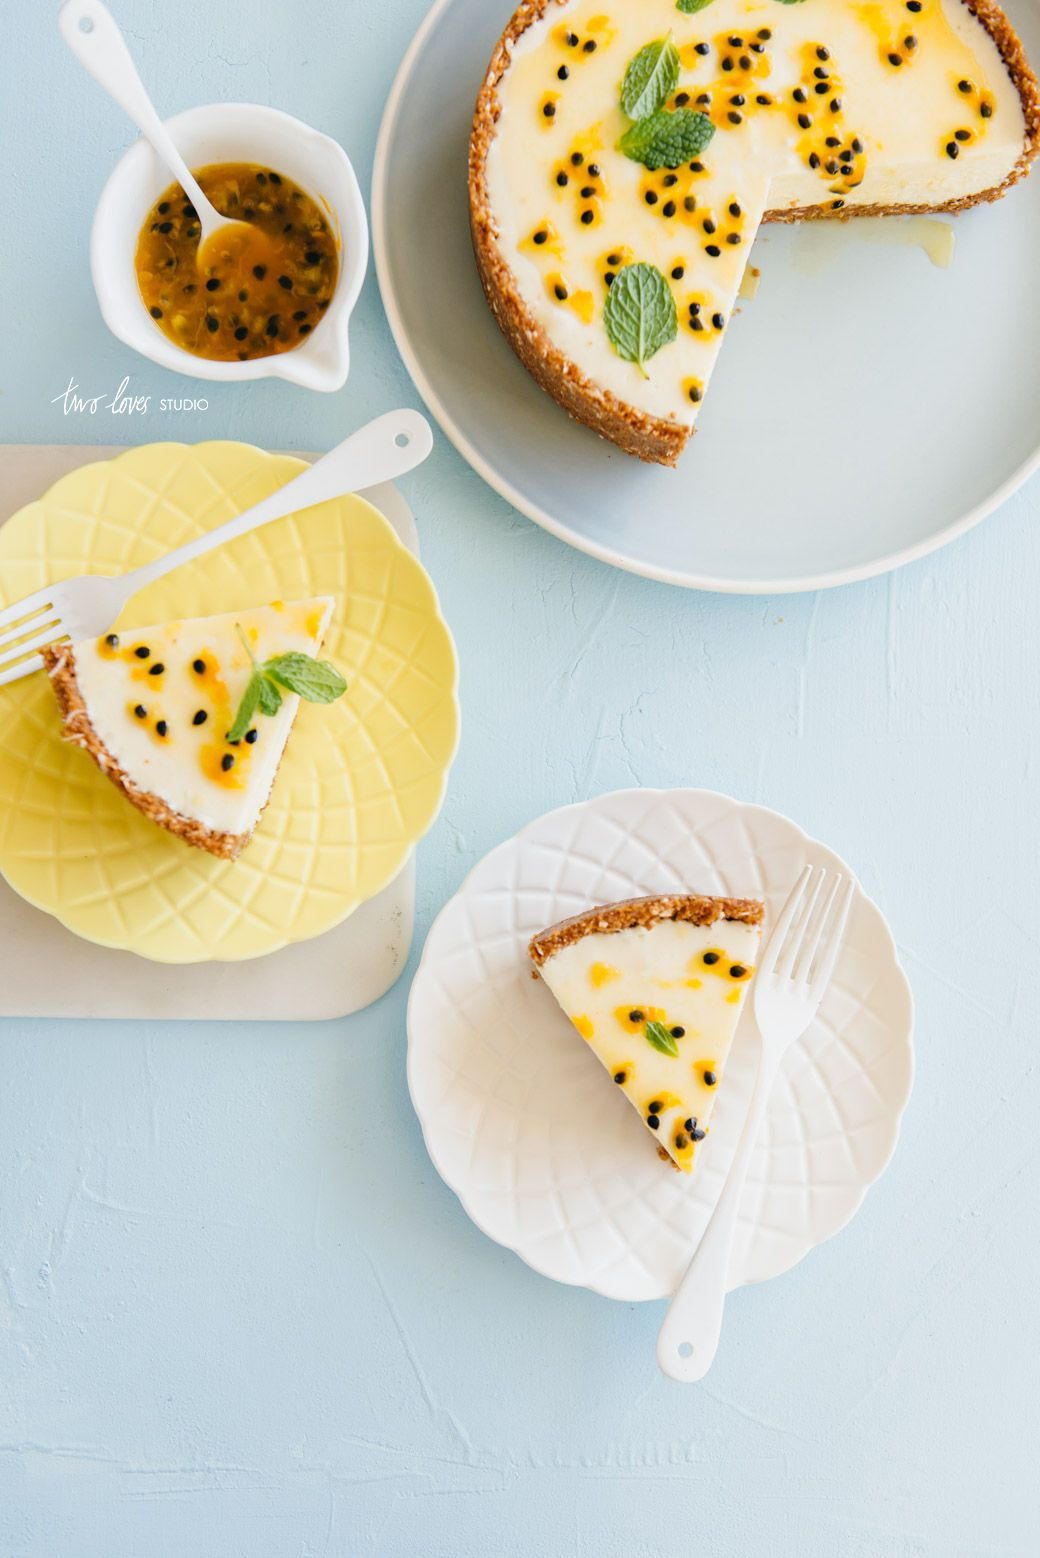 Food Photography Behind The Lens: White Chocolate Cheesecake